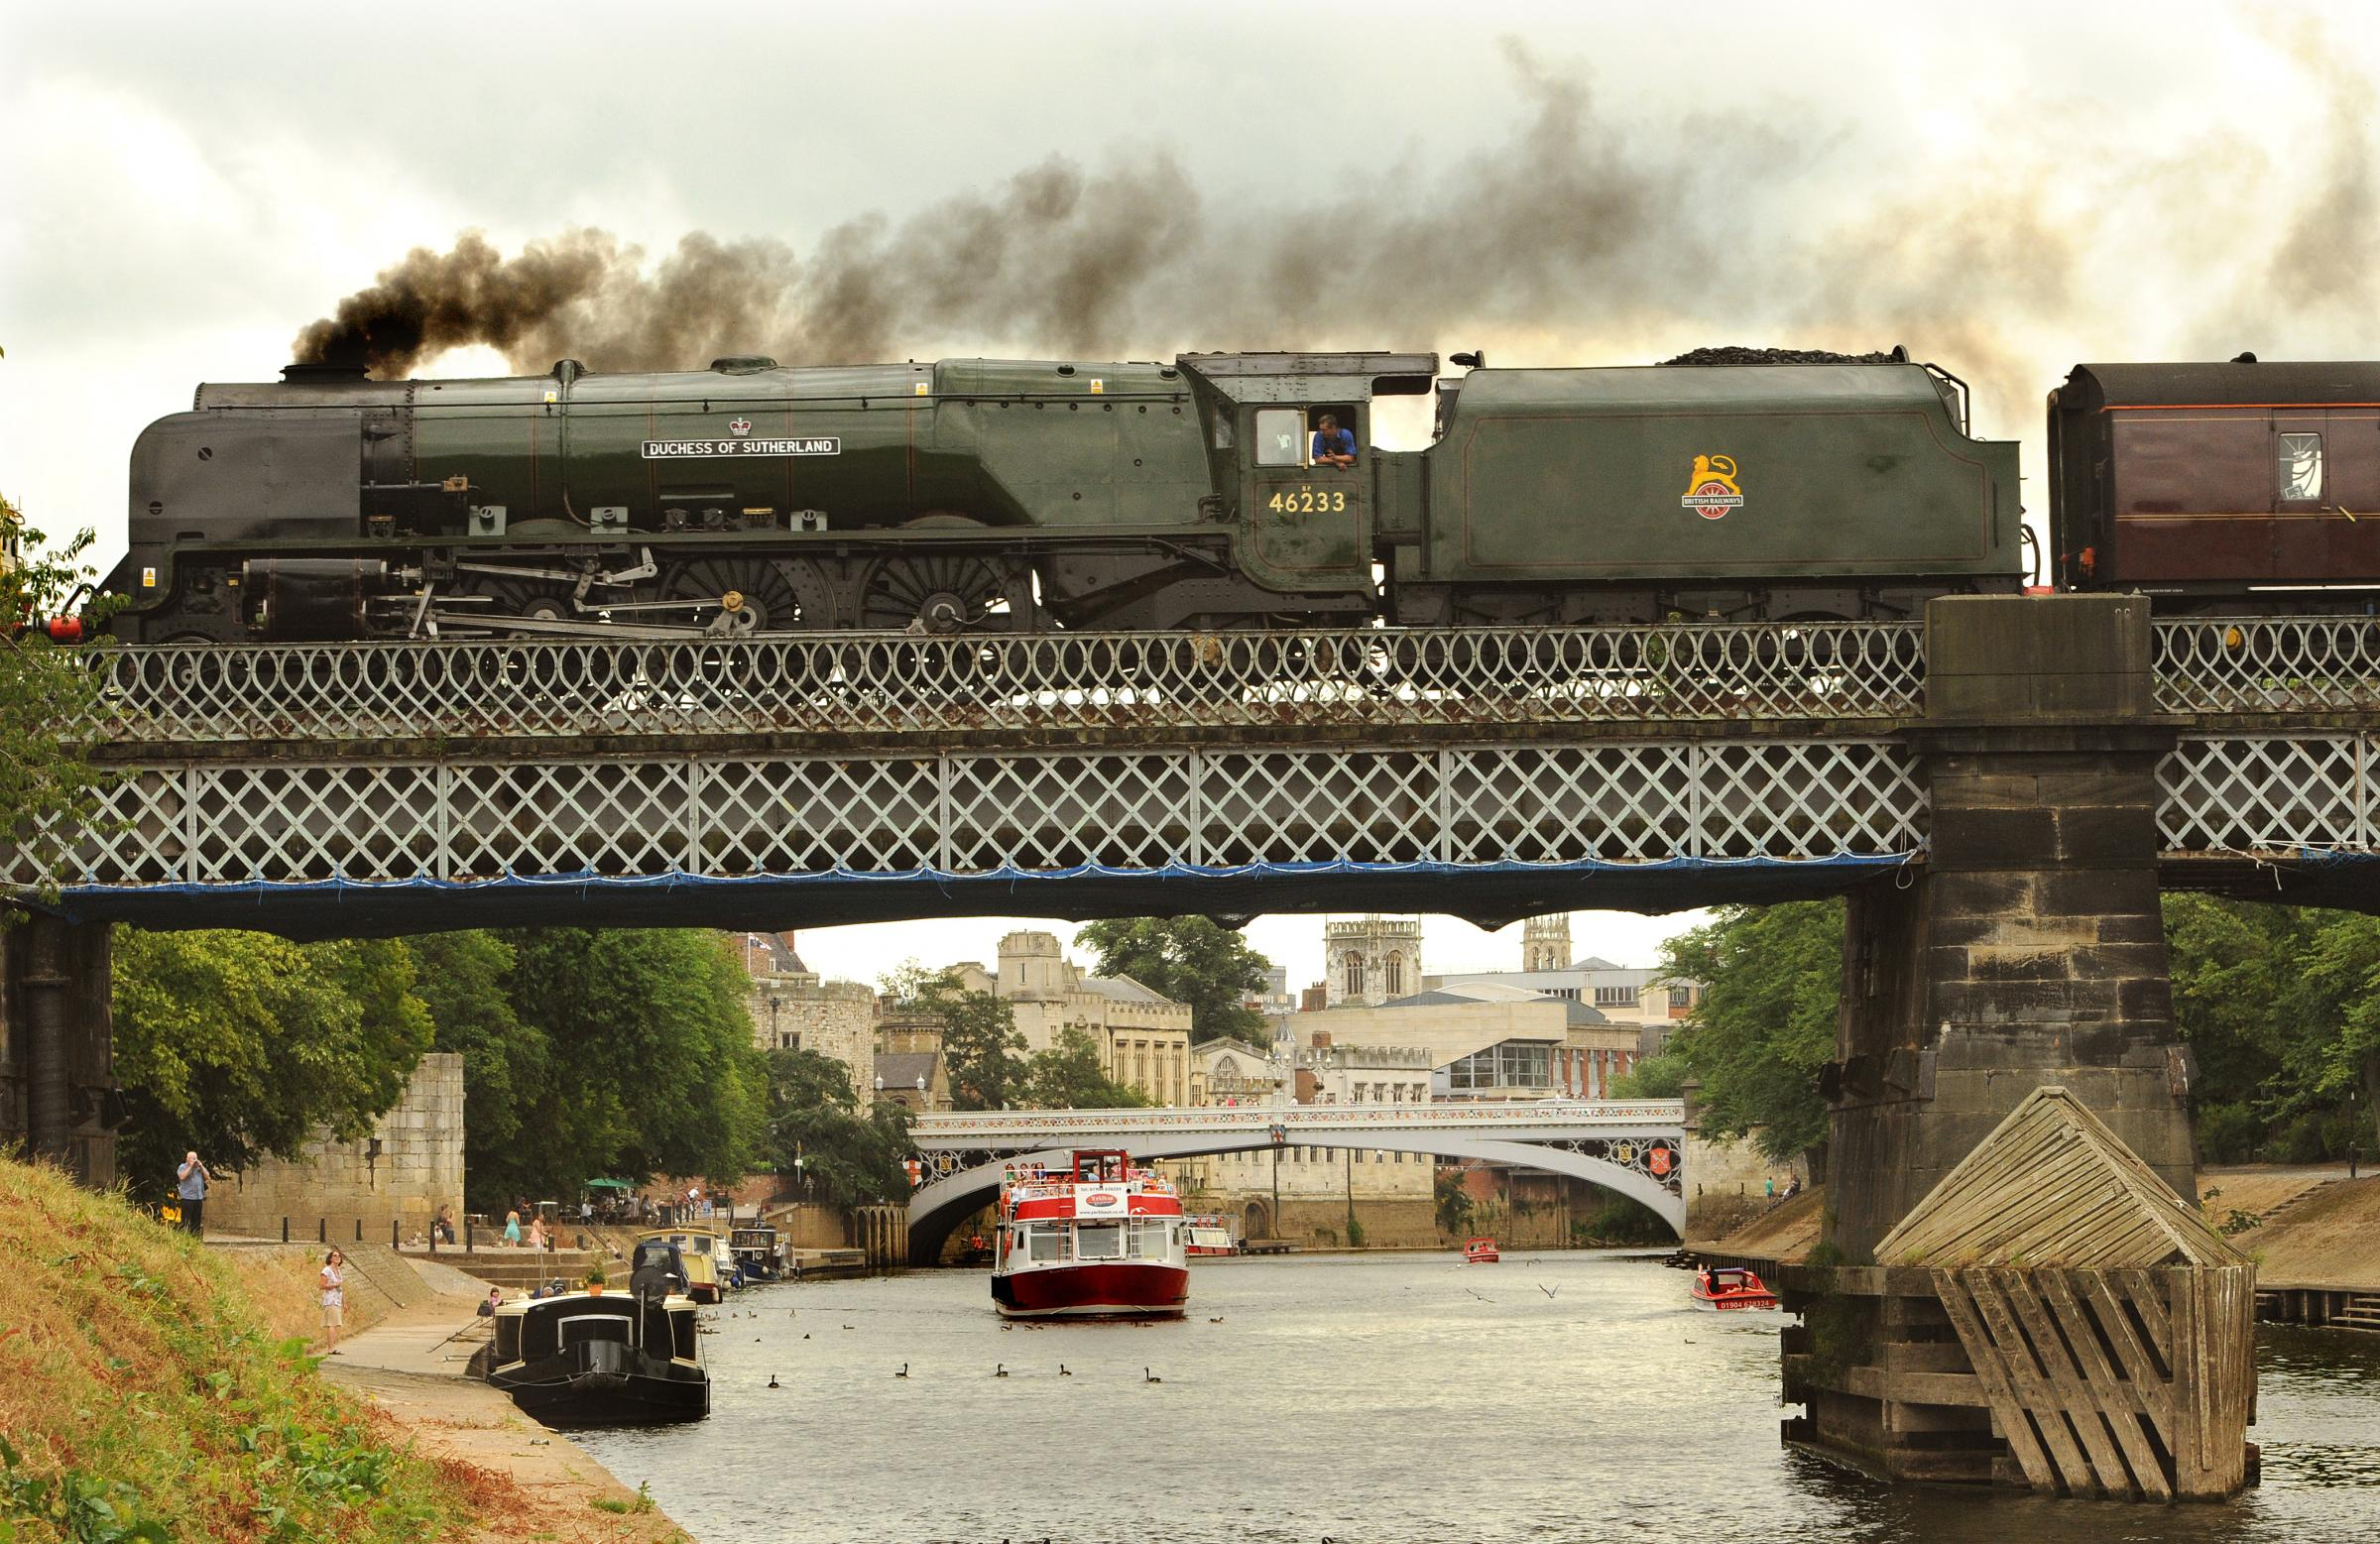 The Duchess of Sutherland steams over Scarborough Bridge